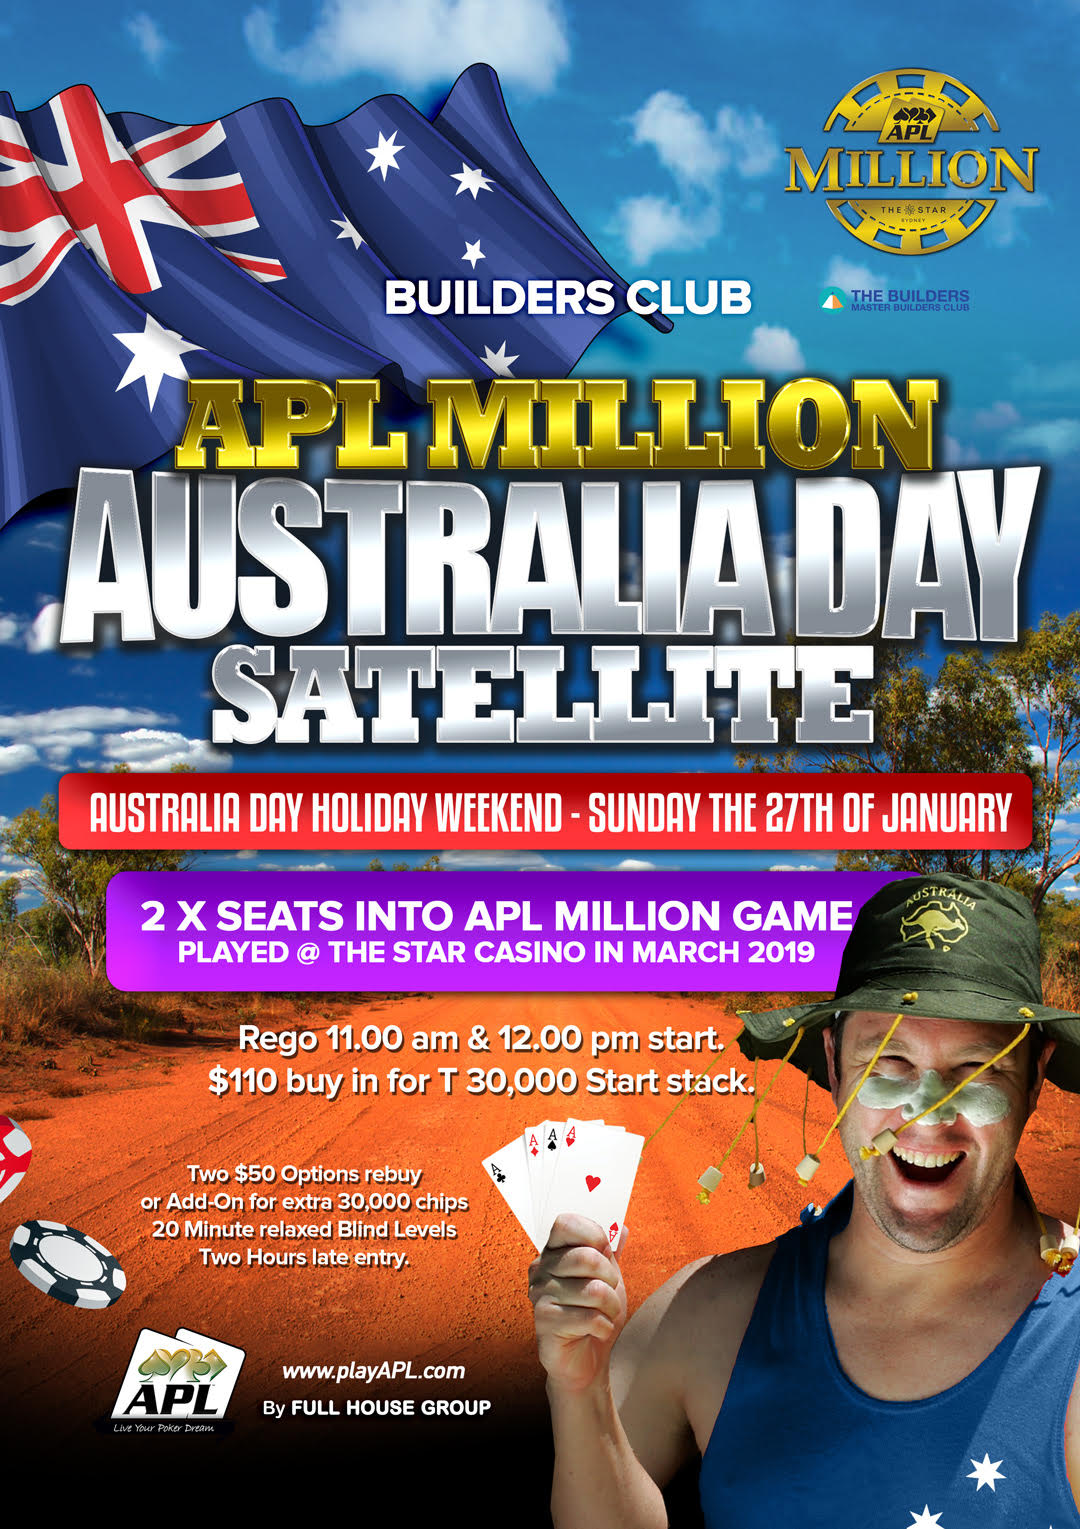 Builders Club Satellite Aussie Day 27th Sunday 12 pm Jan